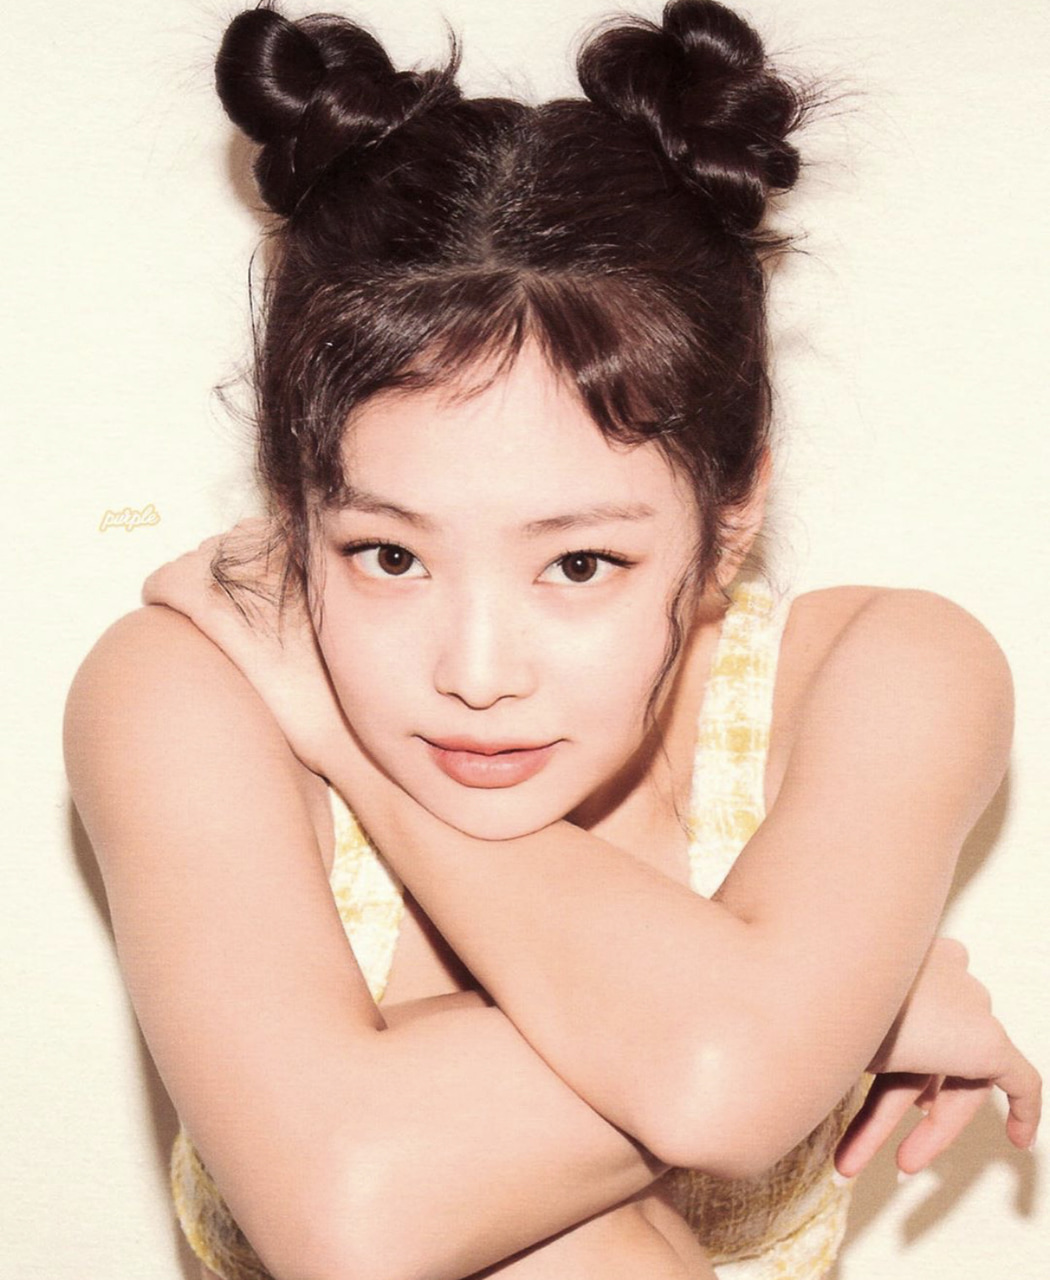 idol, jennie kim, and kpop image